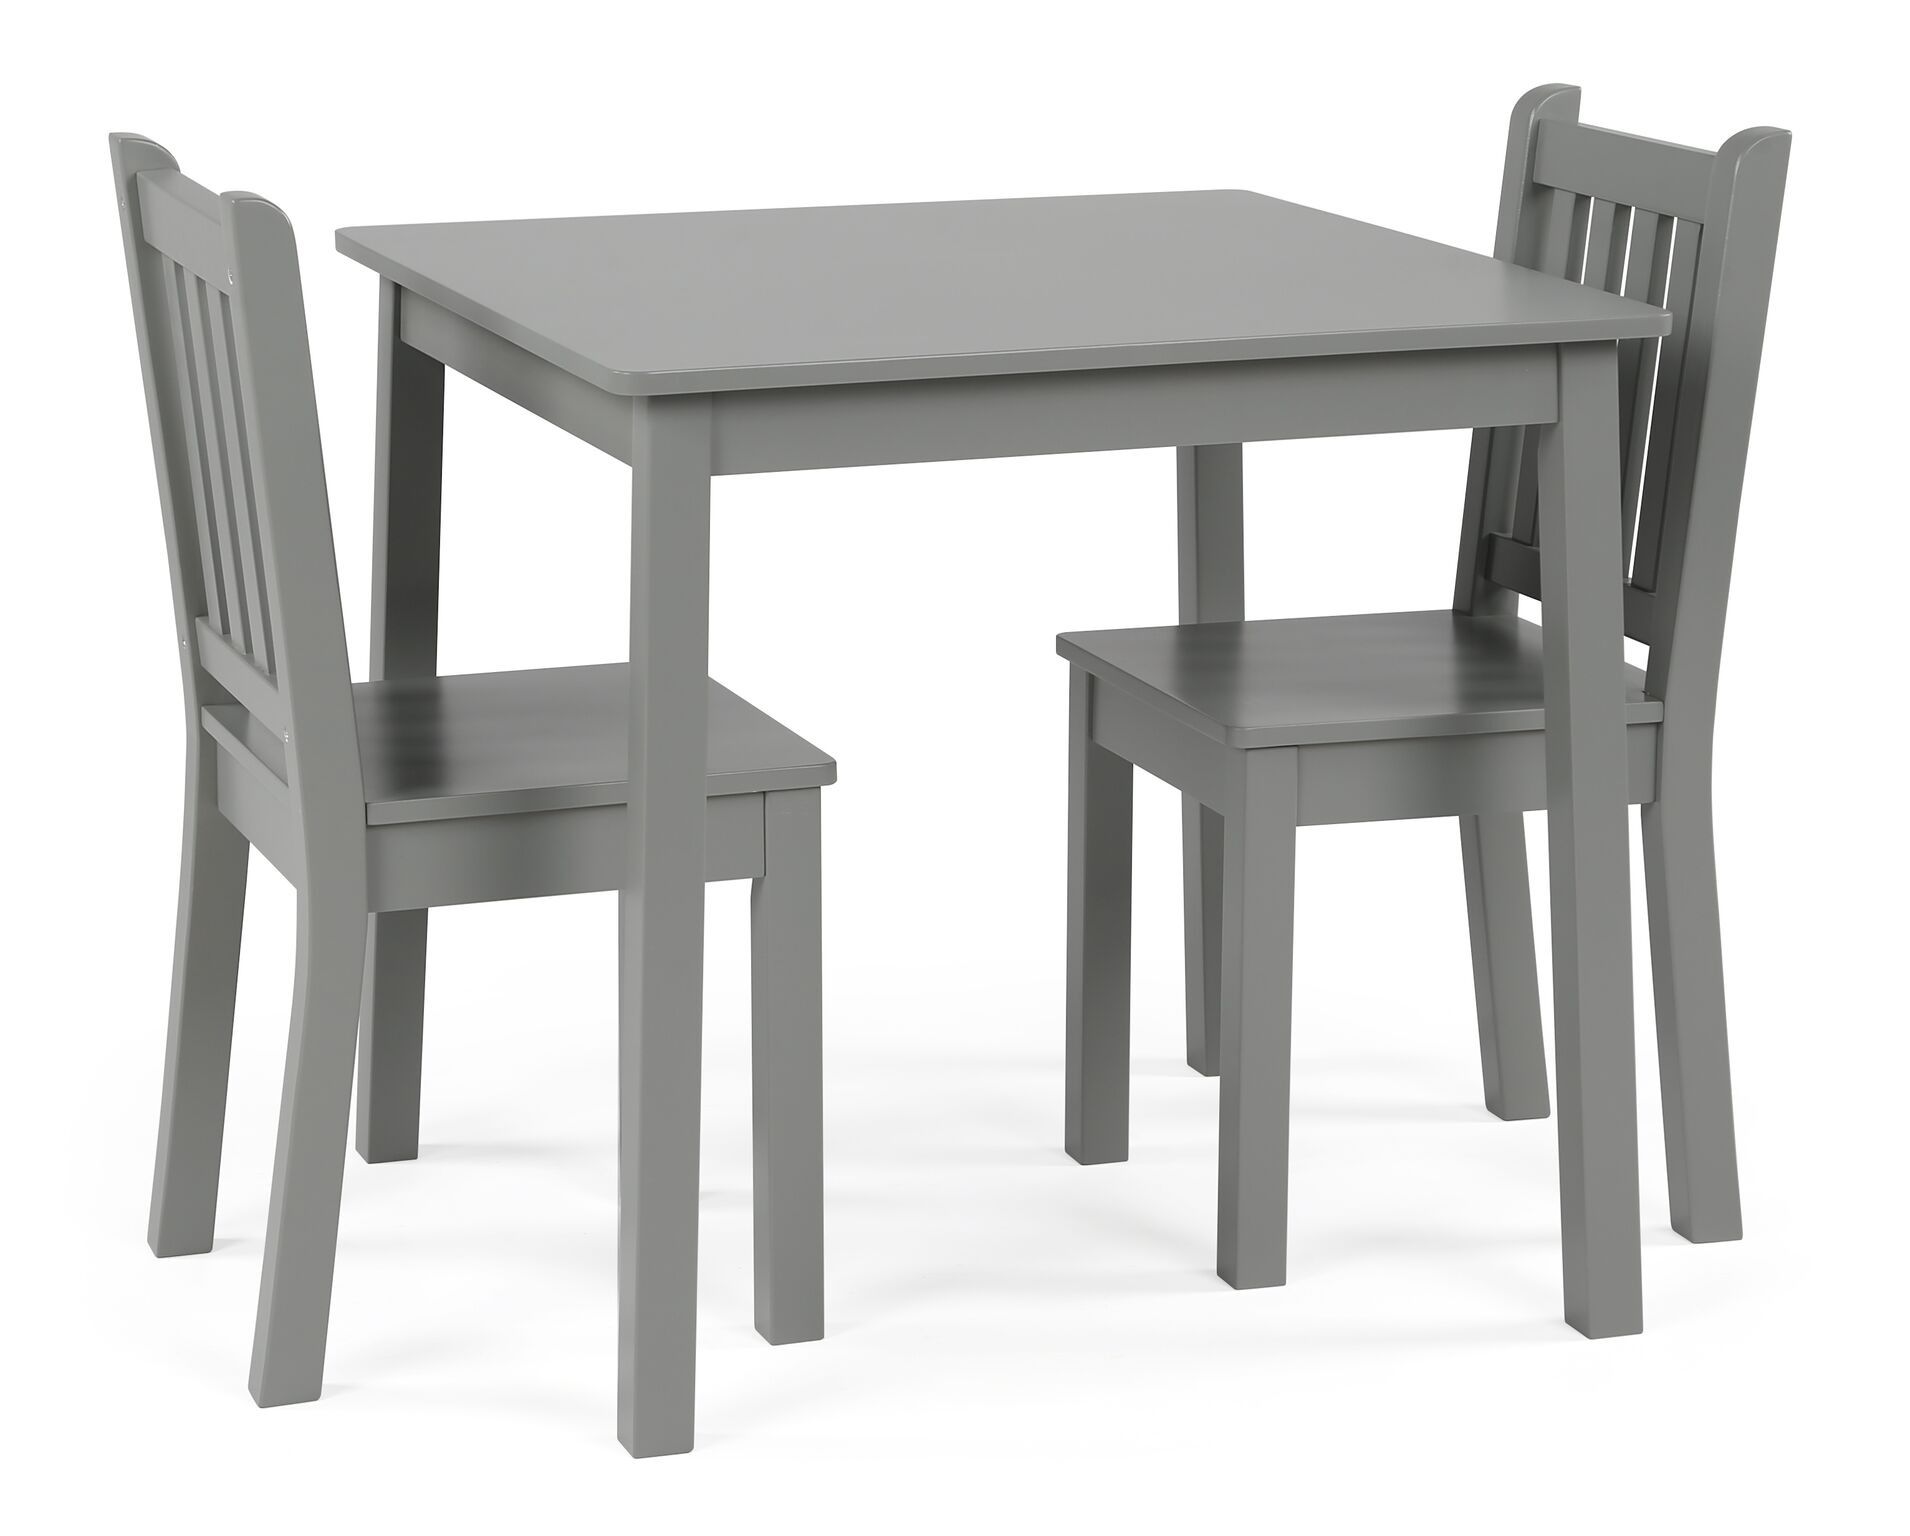 Kids Wood Table And Chairs Curious Lion Kids Wood Large Table And 2 Chairs Set Grey